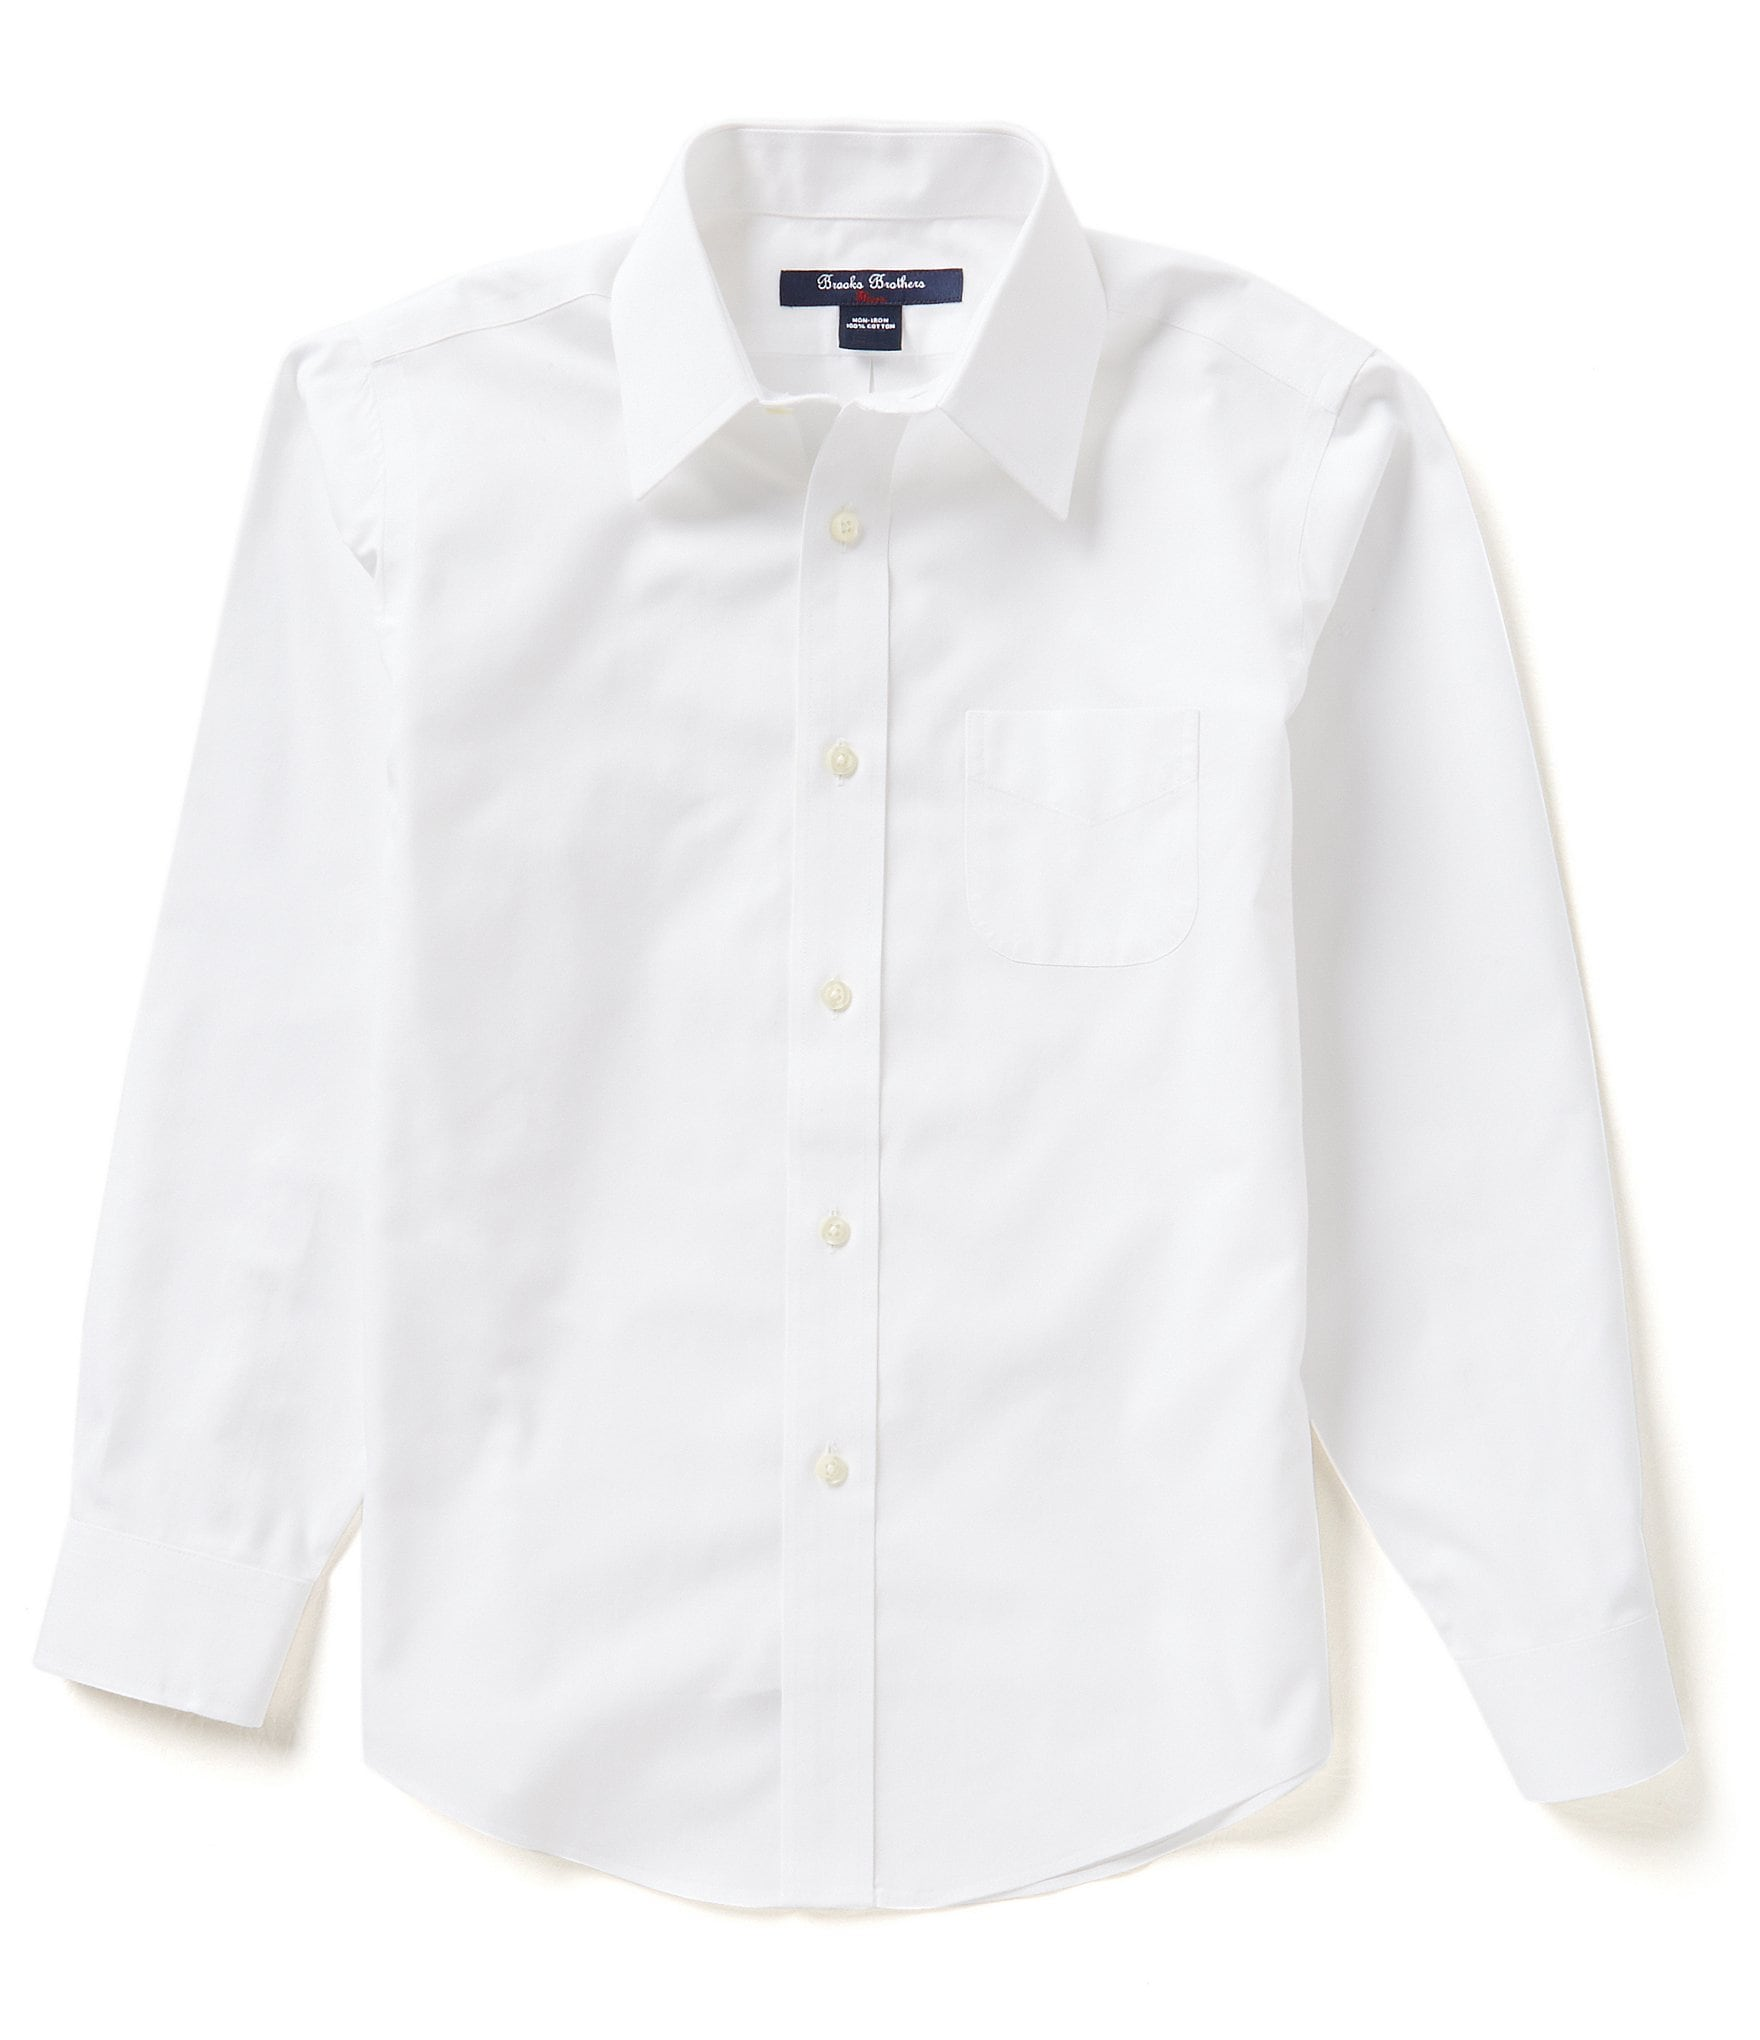 68fa87a0 Boys' Dress Shirts & Pants 8-20 | Dillard's